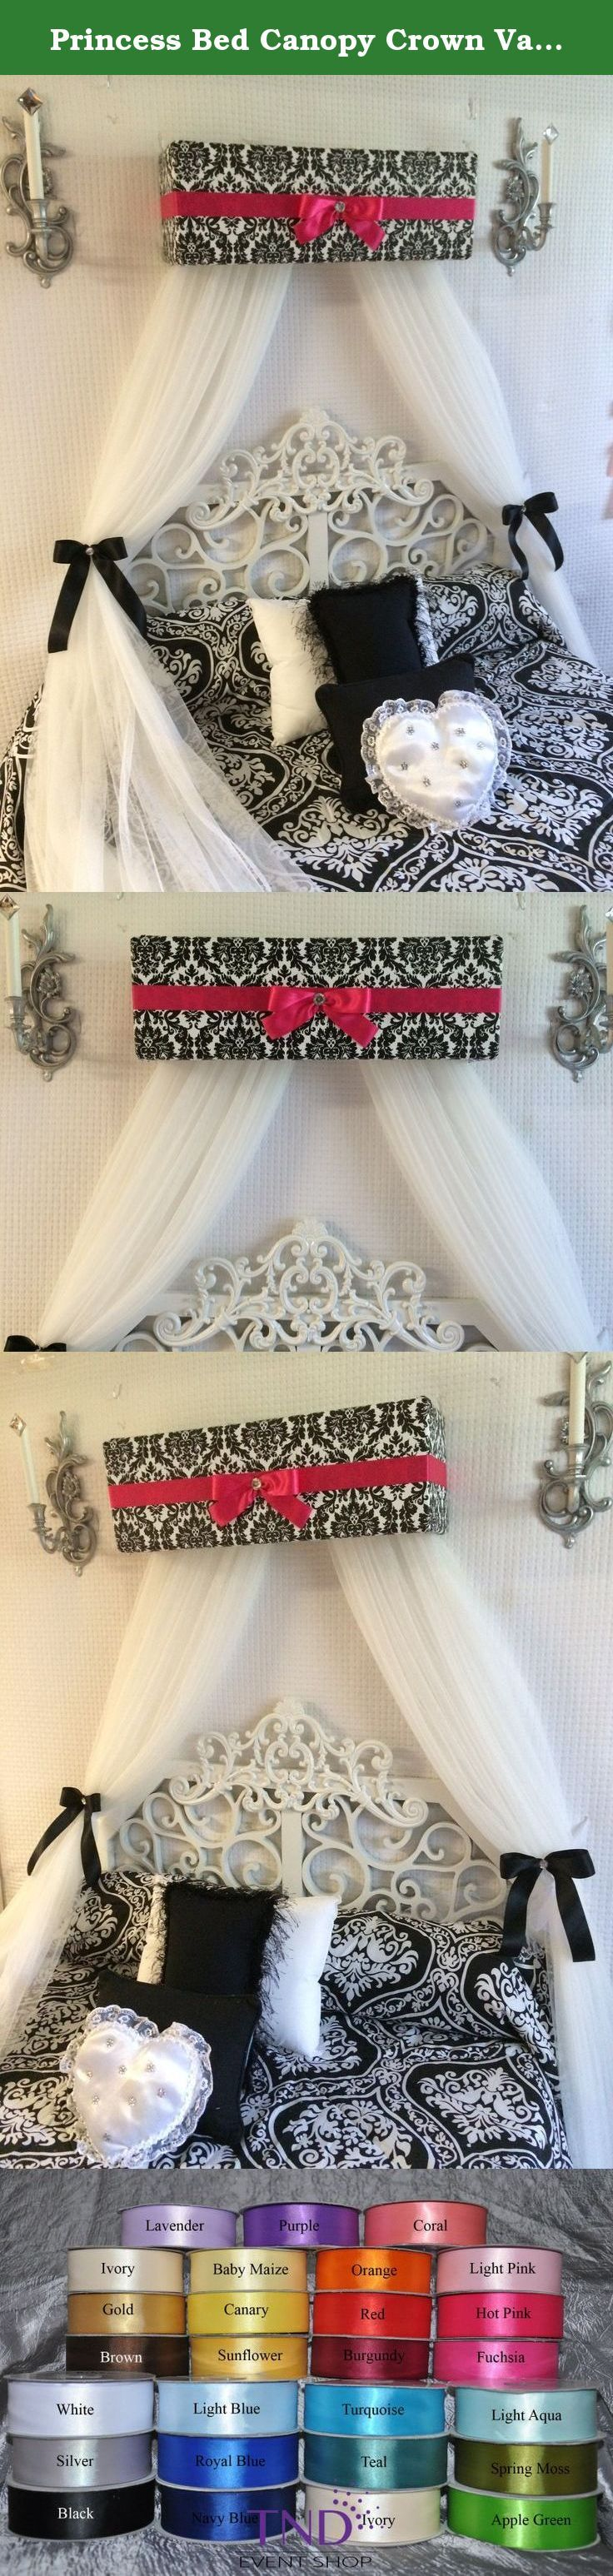 Crib for sale davao - Princess Bed Canopy Crown Valance French Paris Damask Pink Black Upholstered Teester Crib Cornice Free Sheers